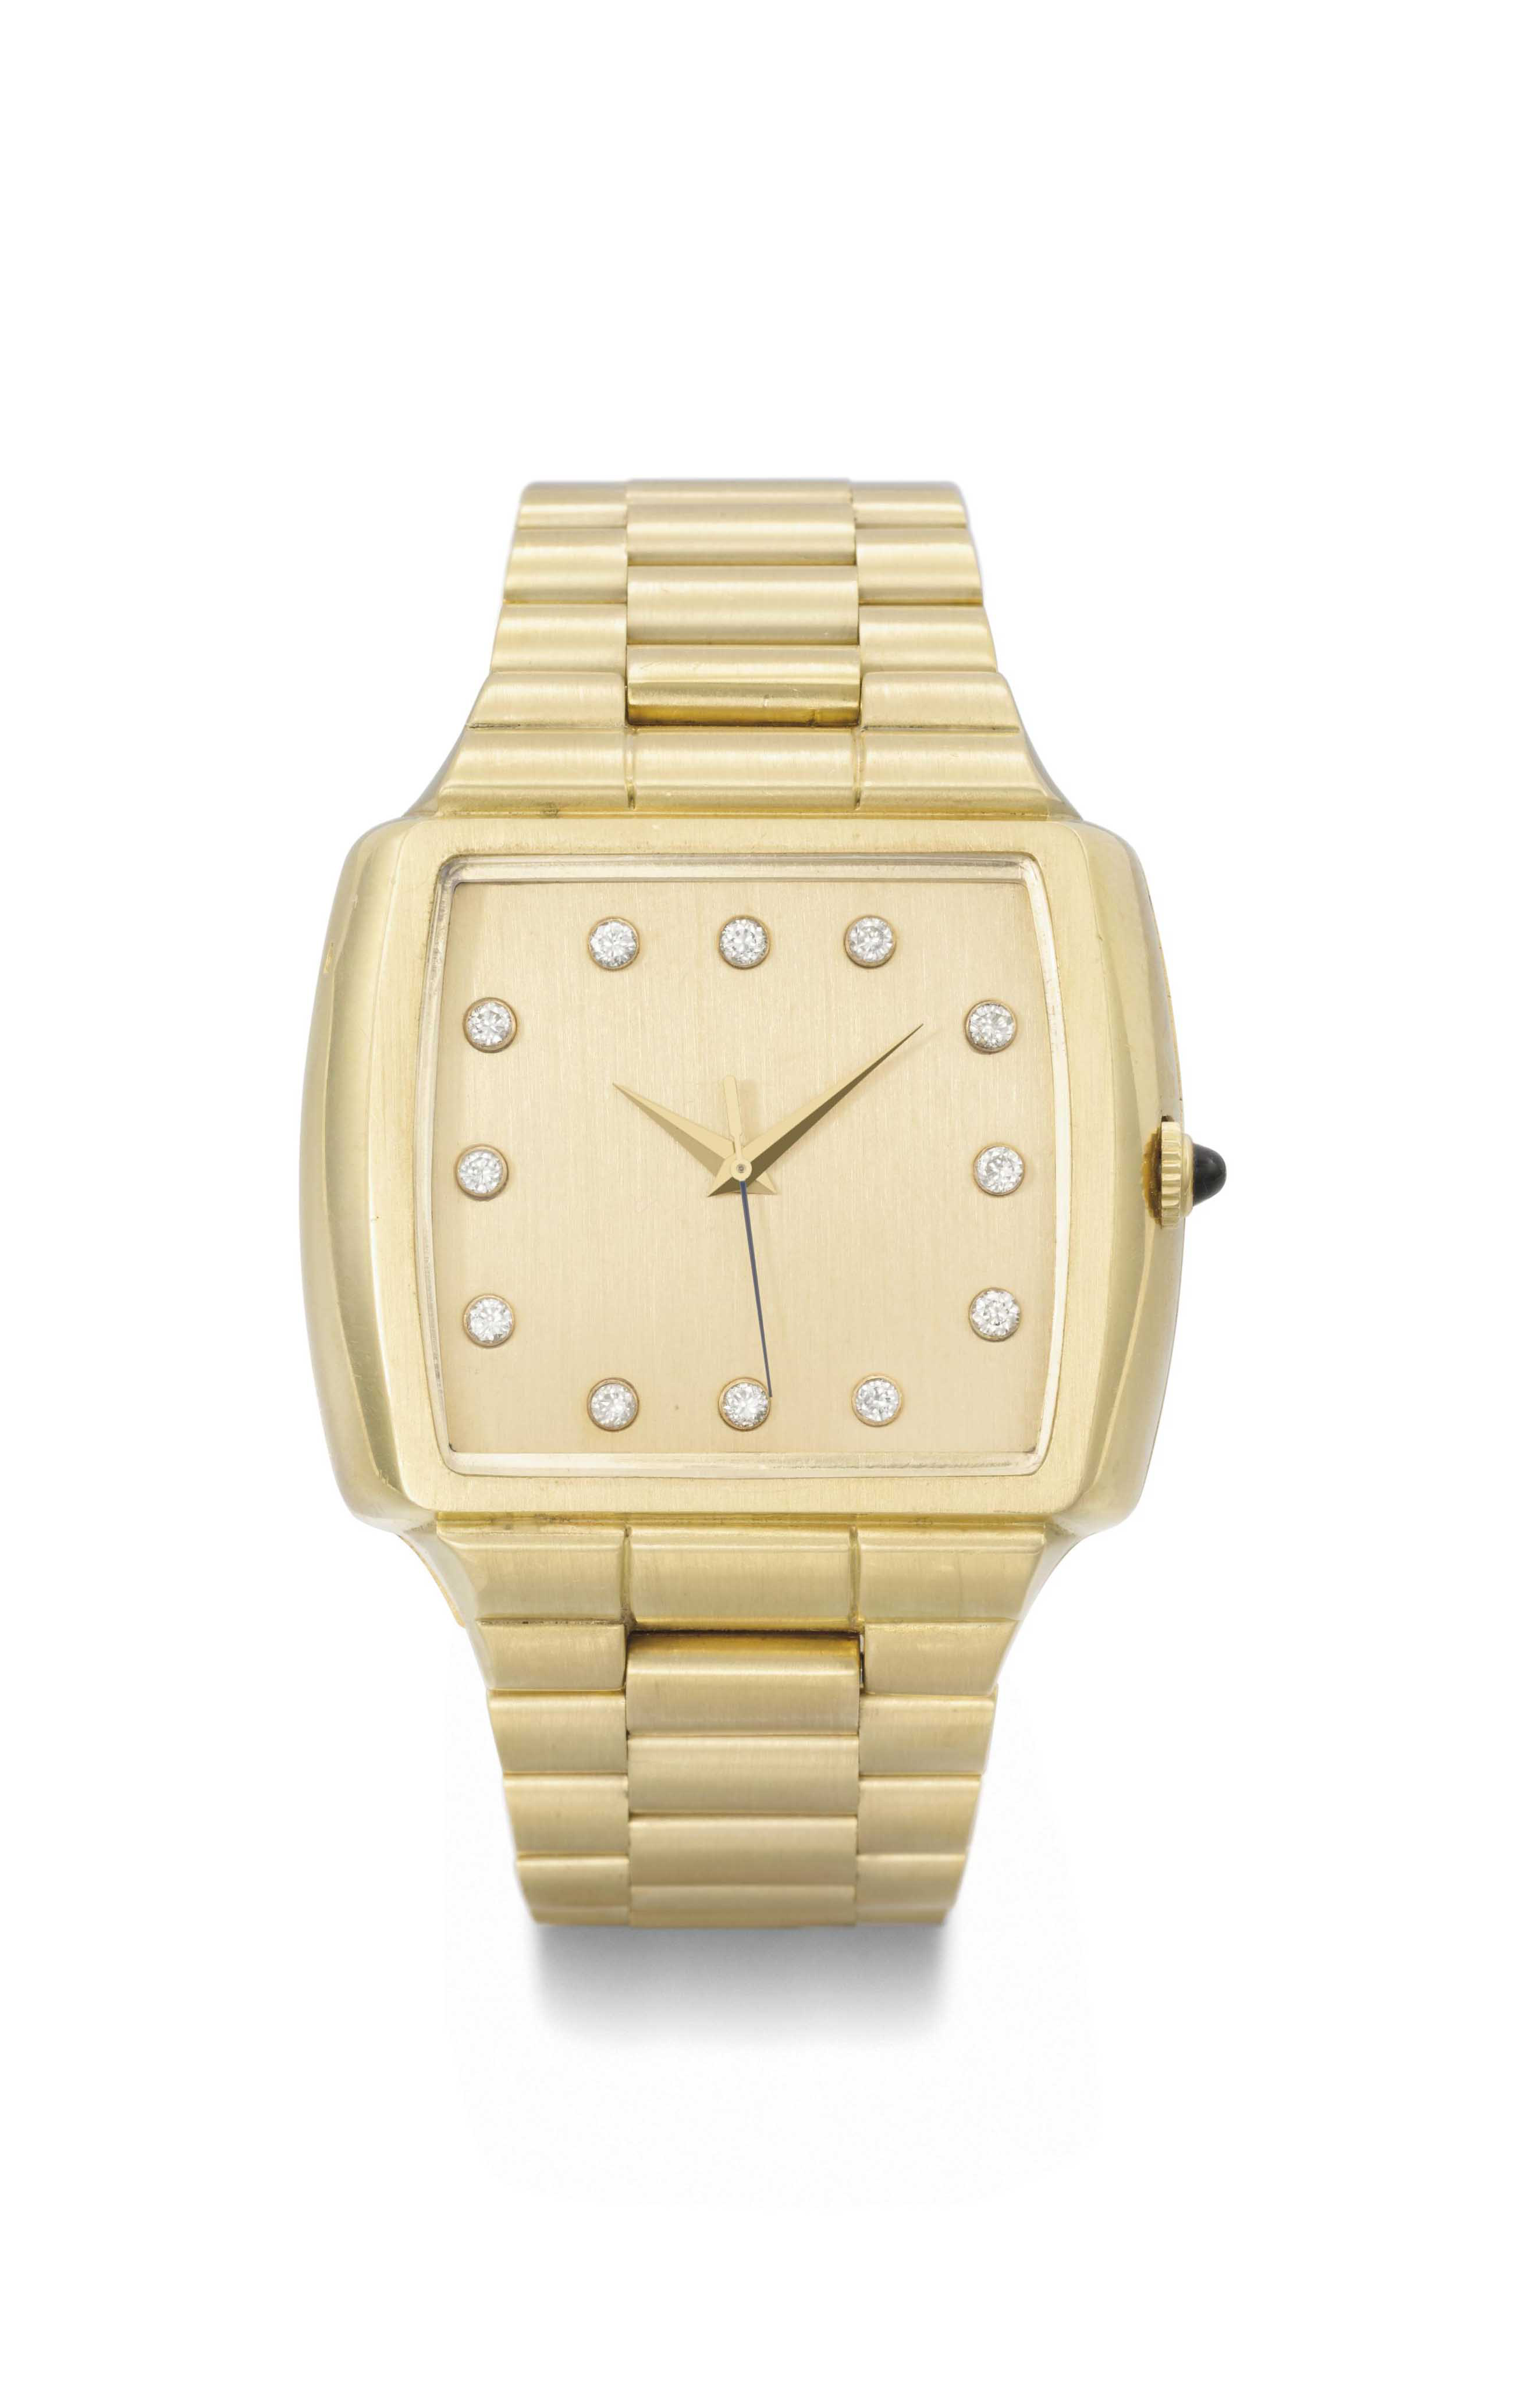 Pulsar. An unusual 18K gold cushion-shaped wristwatch with sweep centre seconds, diamond-set numerals and Gay Freres bracelet